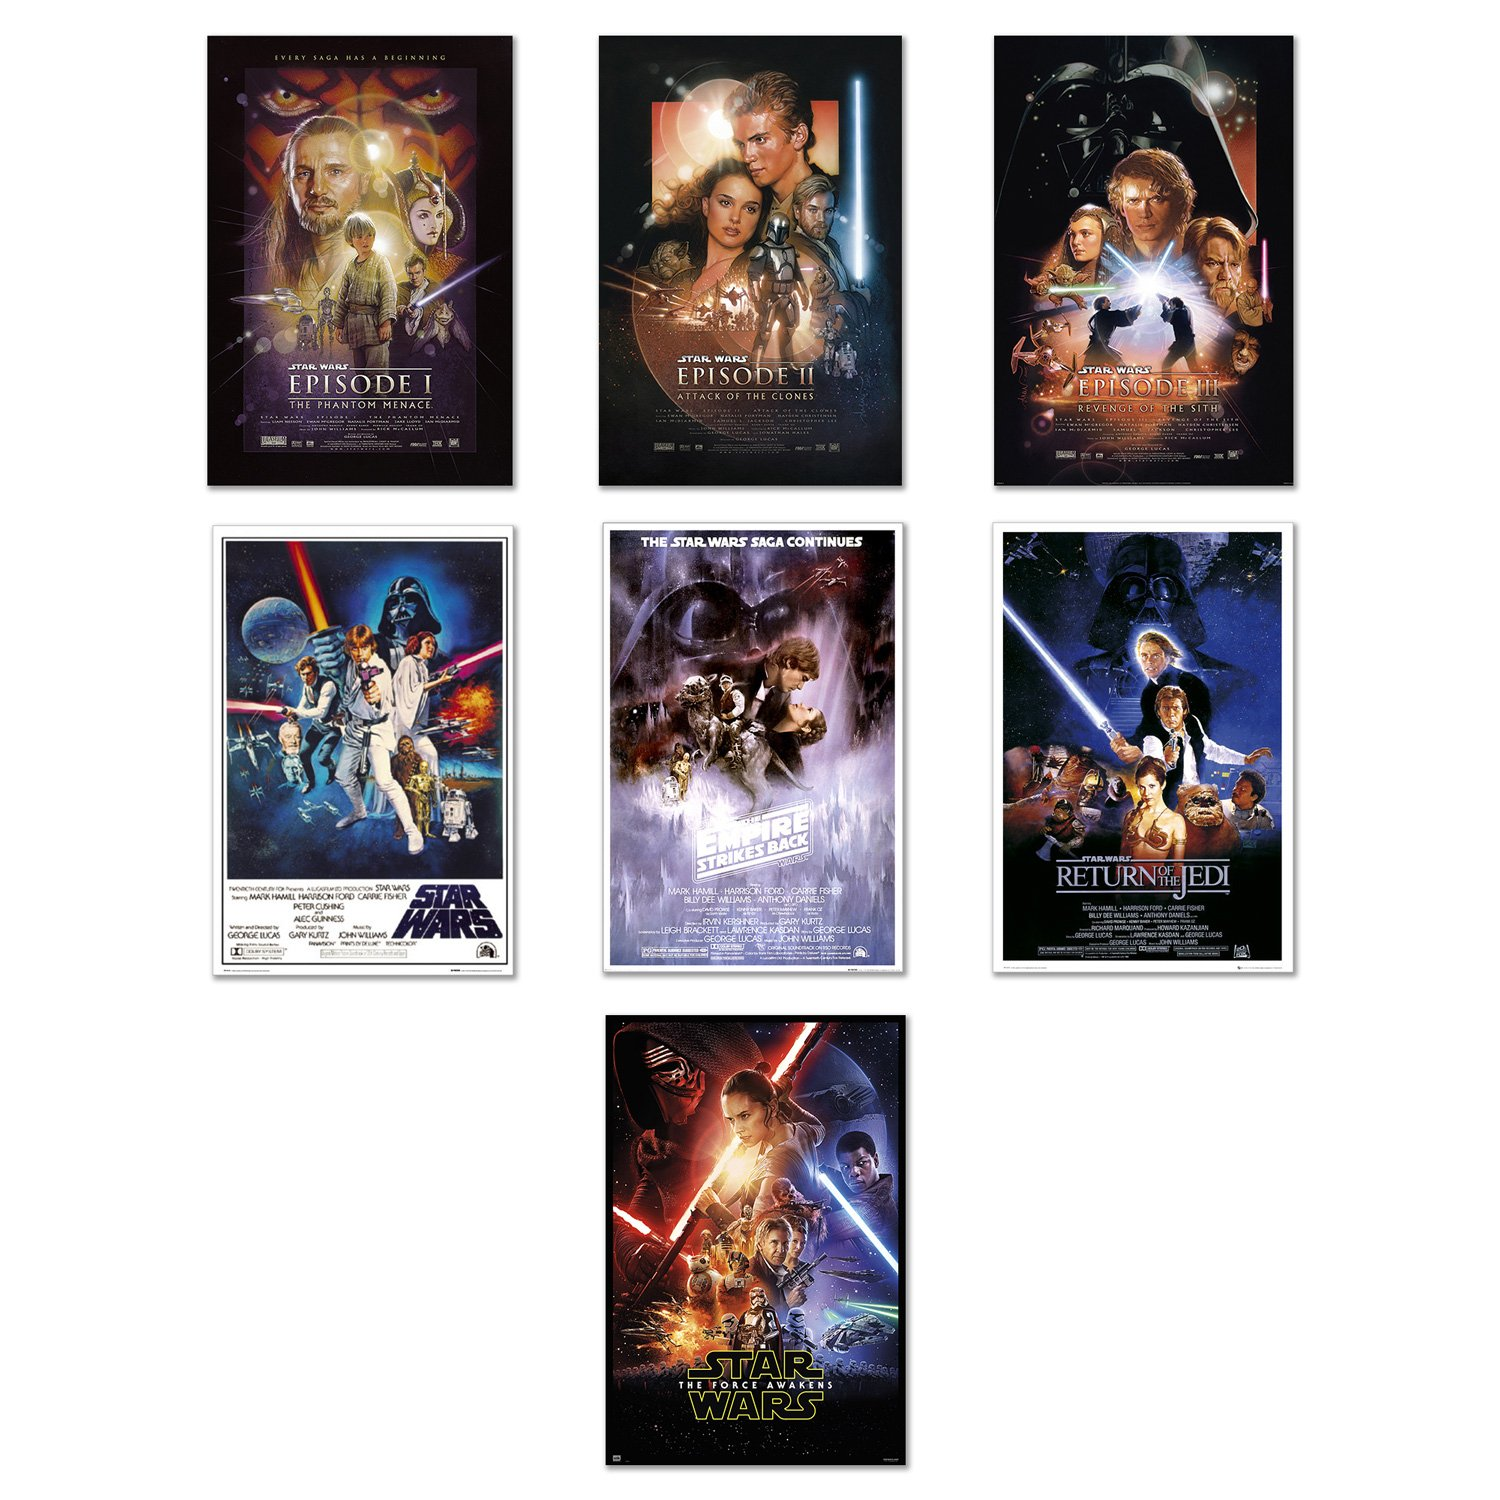 "Star Wars: Episode I, II, III, IV, V, VI & VII - Movie Poster Set (7 Individual Full Size Movie Posters) (Size: 24"" x 36"" each)"